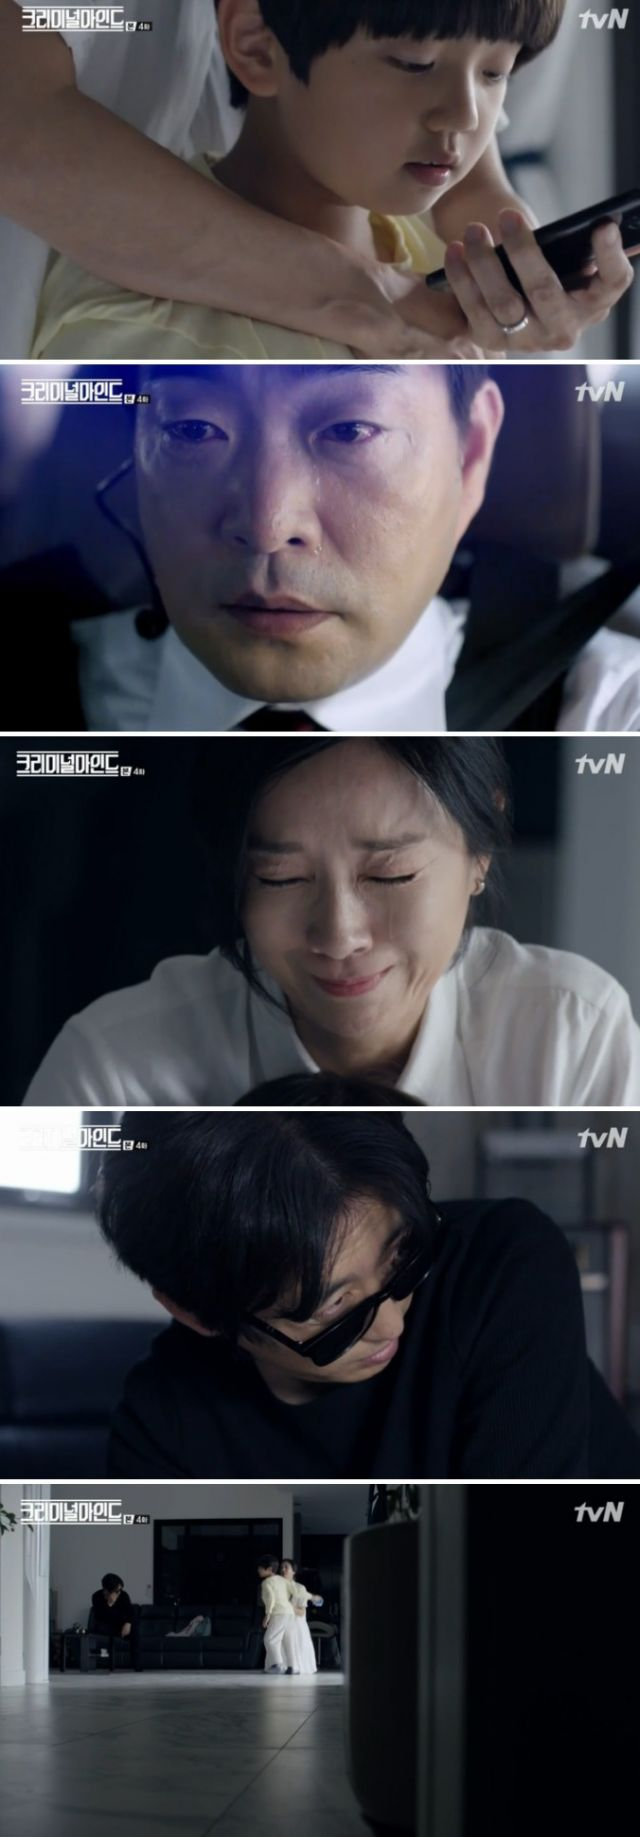 [Spoiler] Added episode 4 captures for the Korean drama 'Criminal Minds'